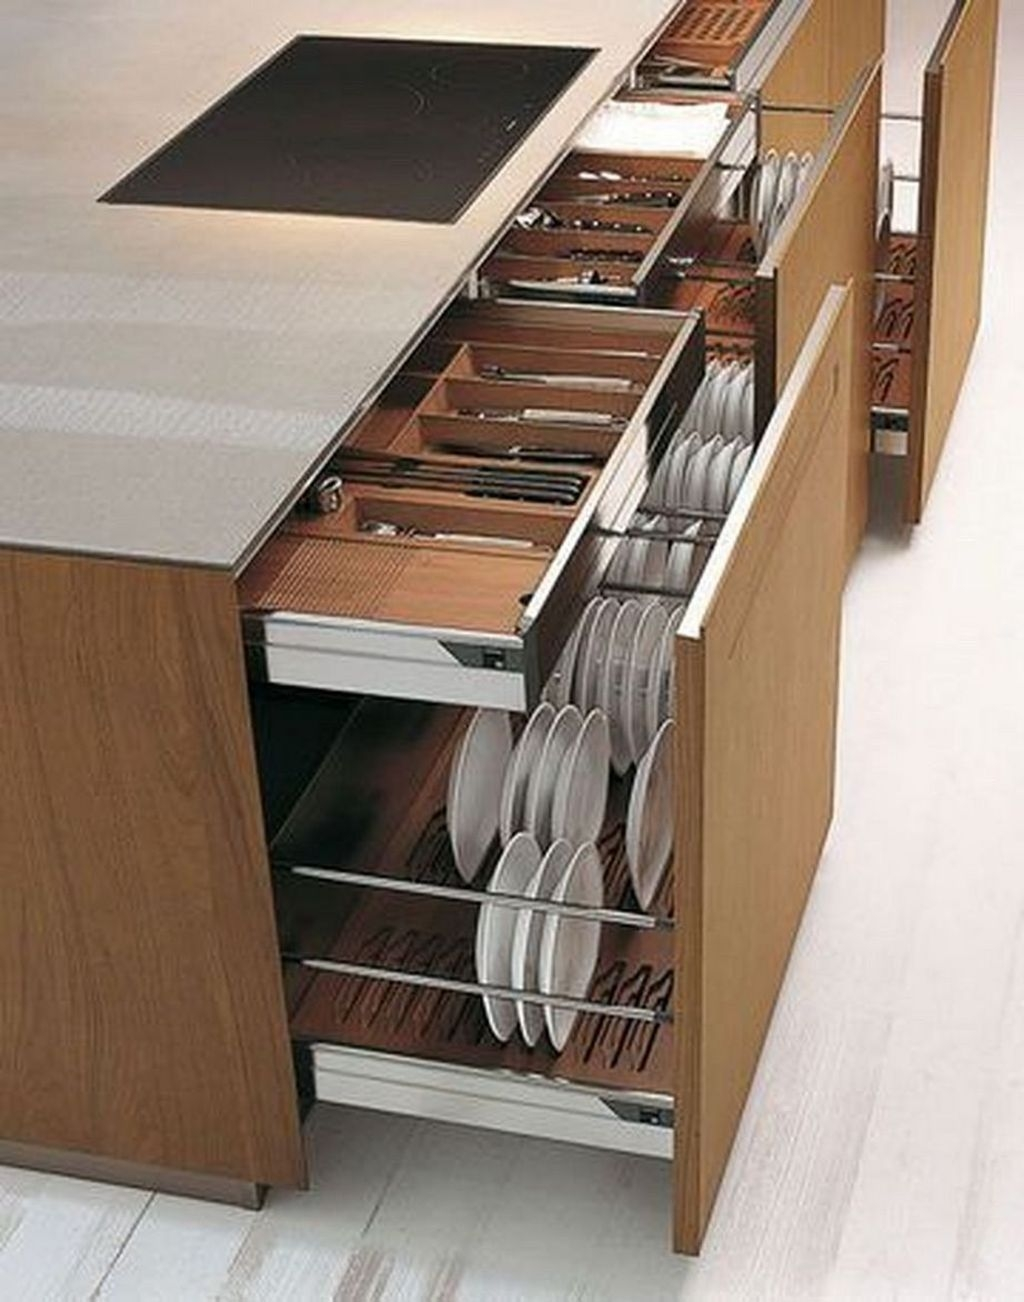 Luxury Kitchen Storage Ideas To Save Your Space23